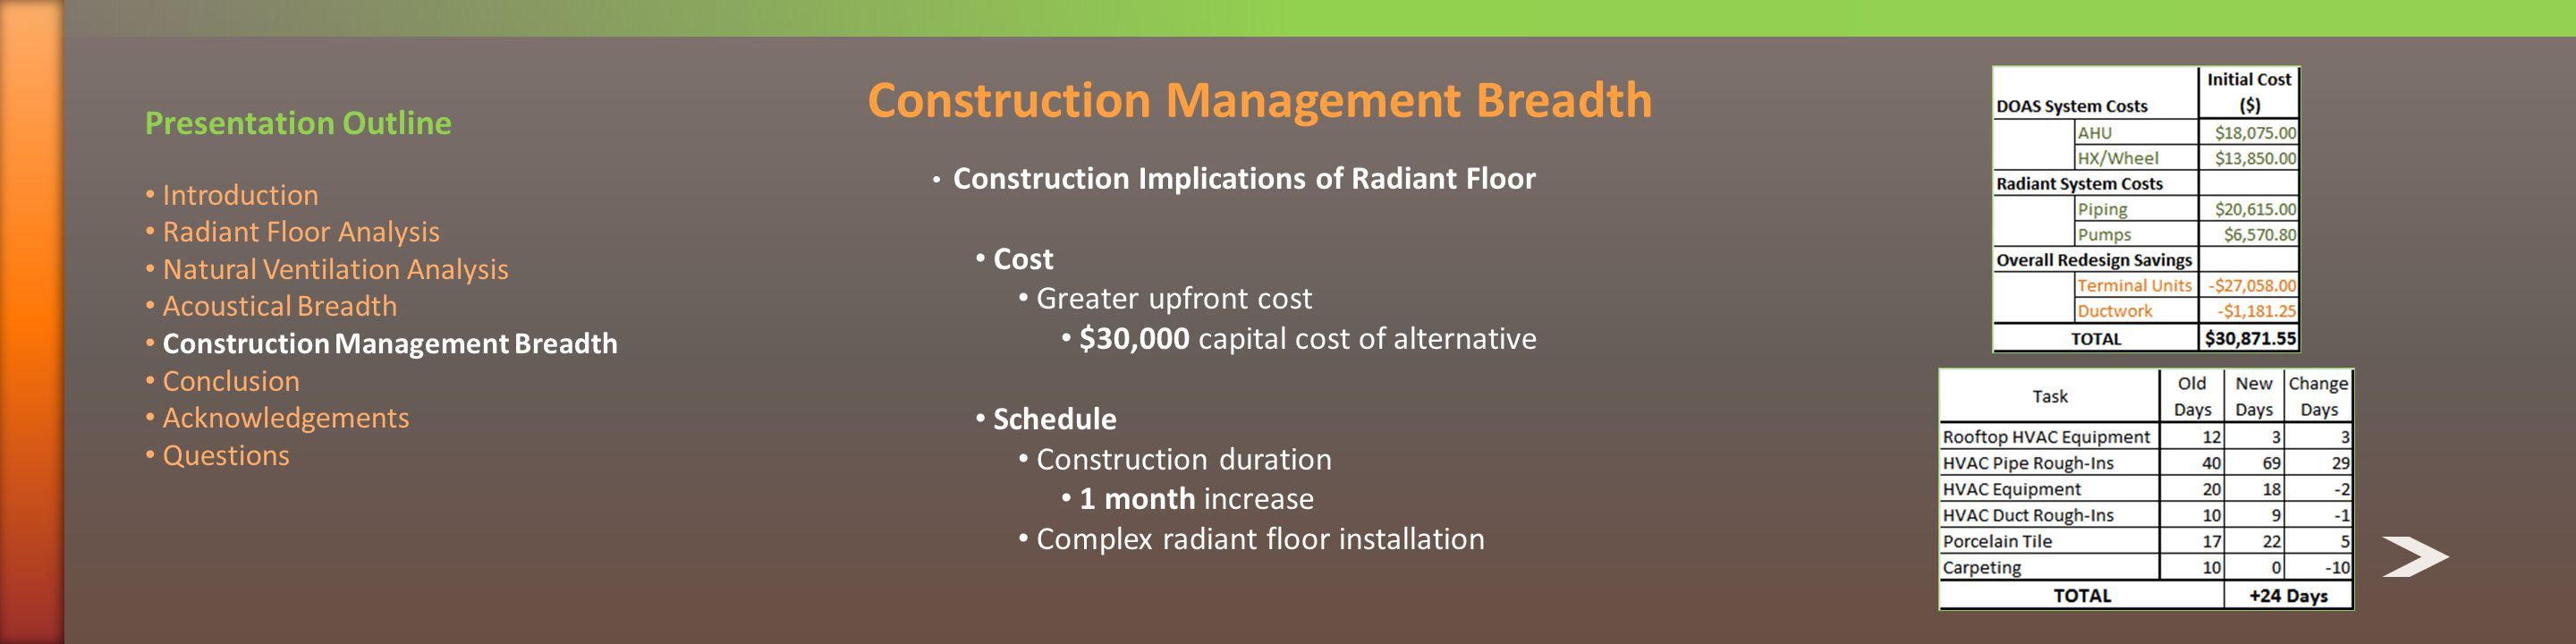 Construction Implications of Radiant Floor Cost Greater upfront cost $30,000 capital cost of alternative Schedule Construction duration 1 month increase Complex radiant floor installation Construction Management Breadth Presentation Outline Introduction Radiant Floor Analysis Natural Ventilation Analysis Acoustical Breadth Construction Management Breadth Conclusion Acknowledgements Questions